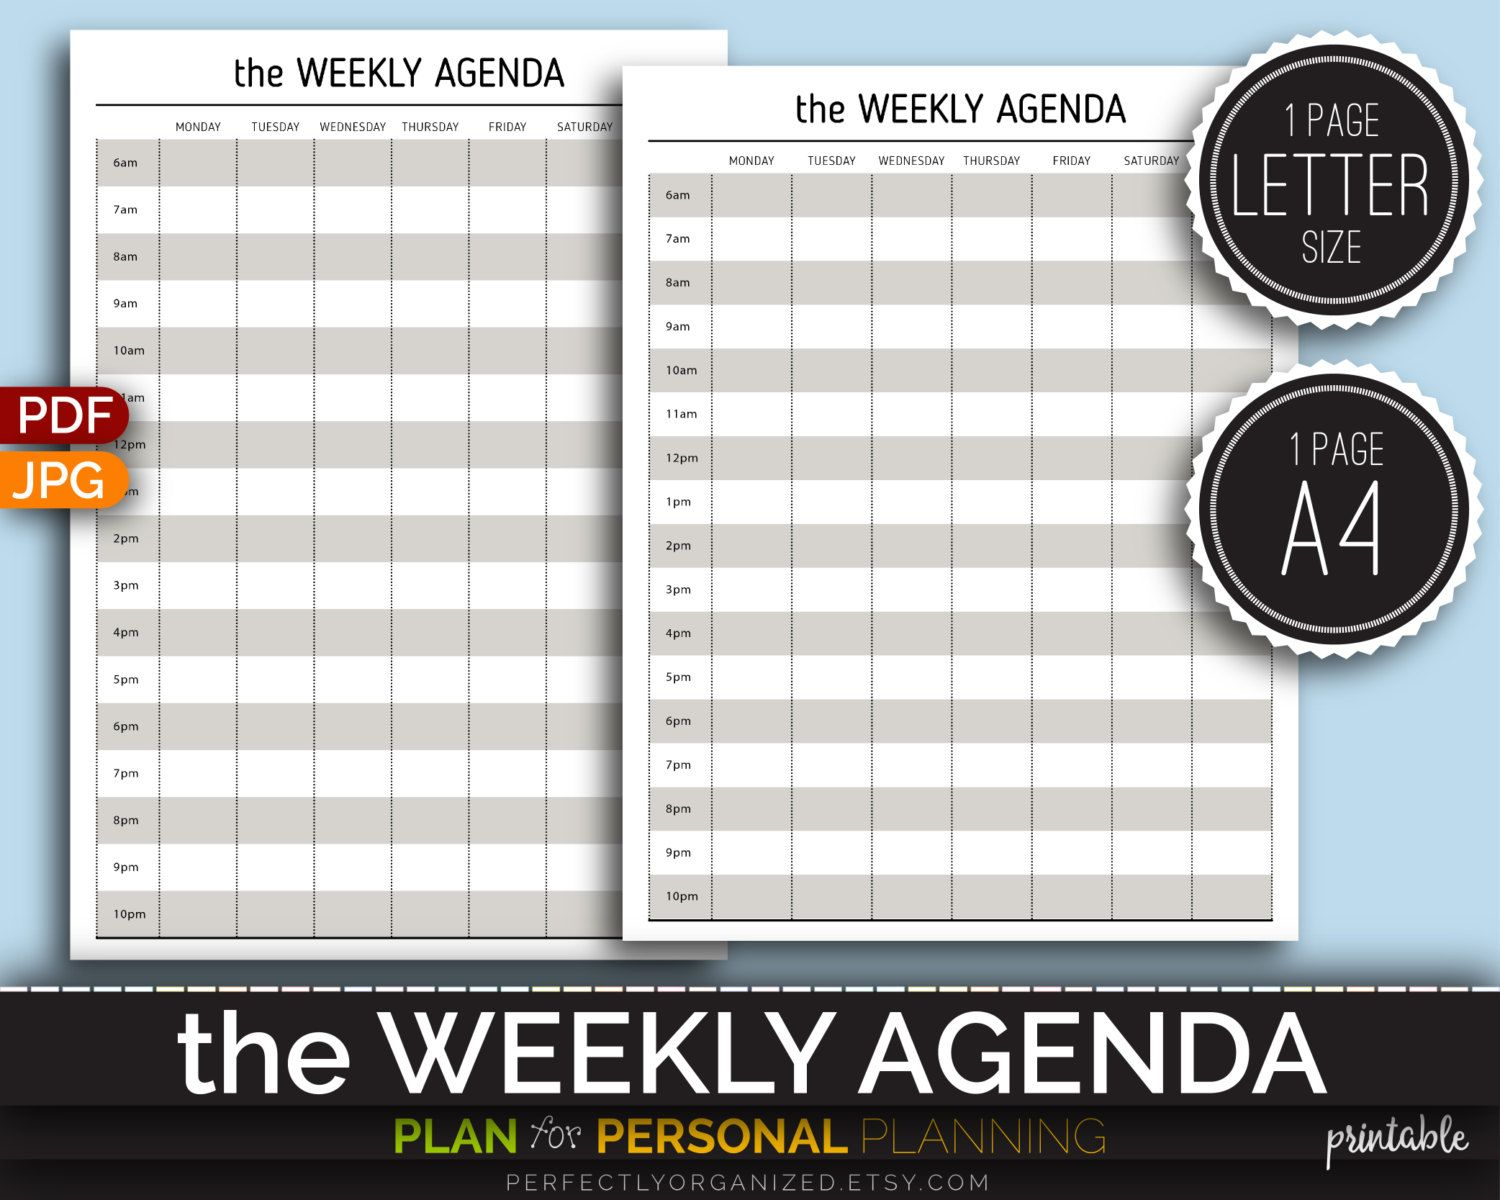 Weekly Agenda Weekly Schedule Planner To-Do List Weekly Calendar ...